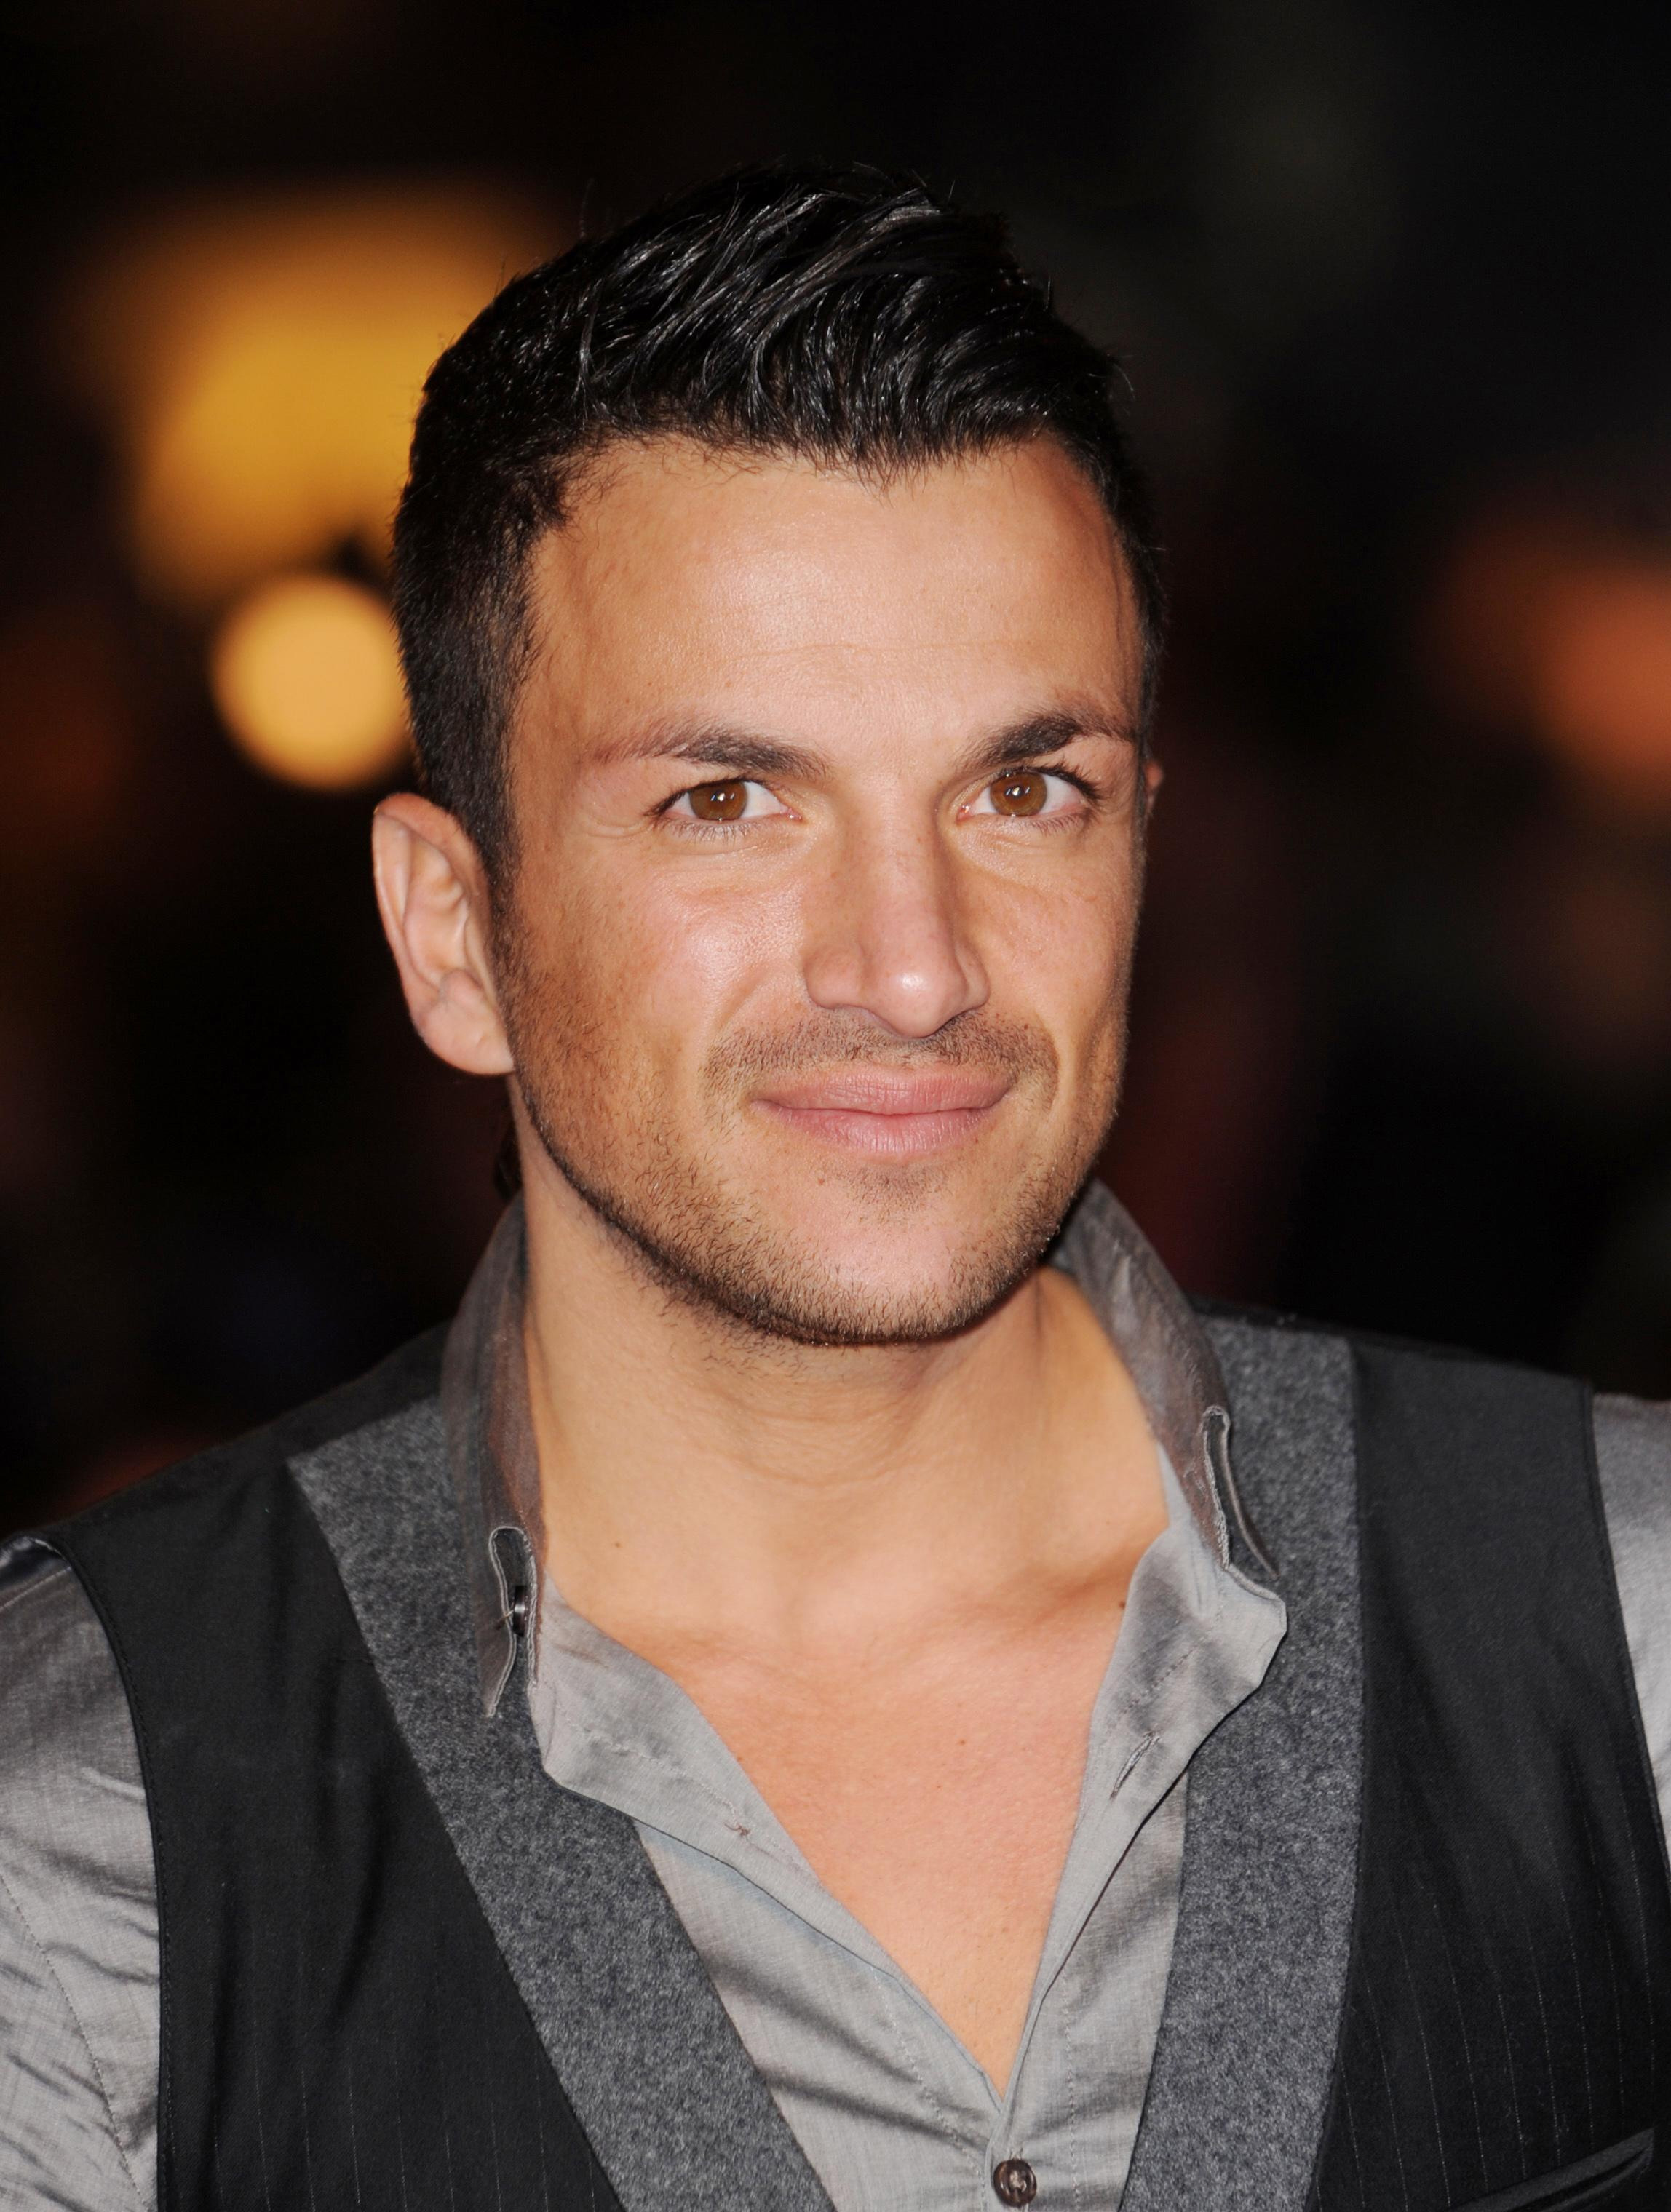 Peter Andre feat Bubbler Ranx